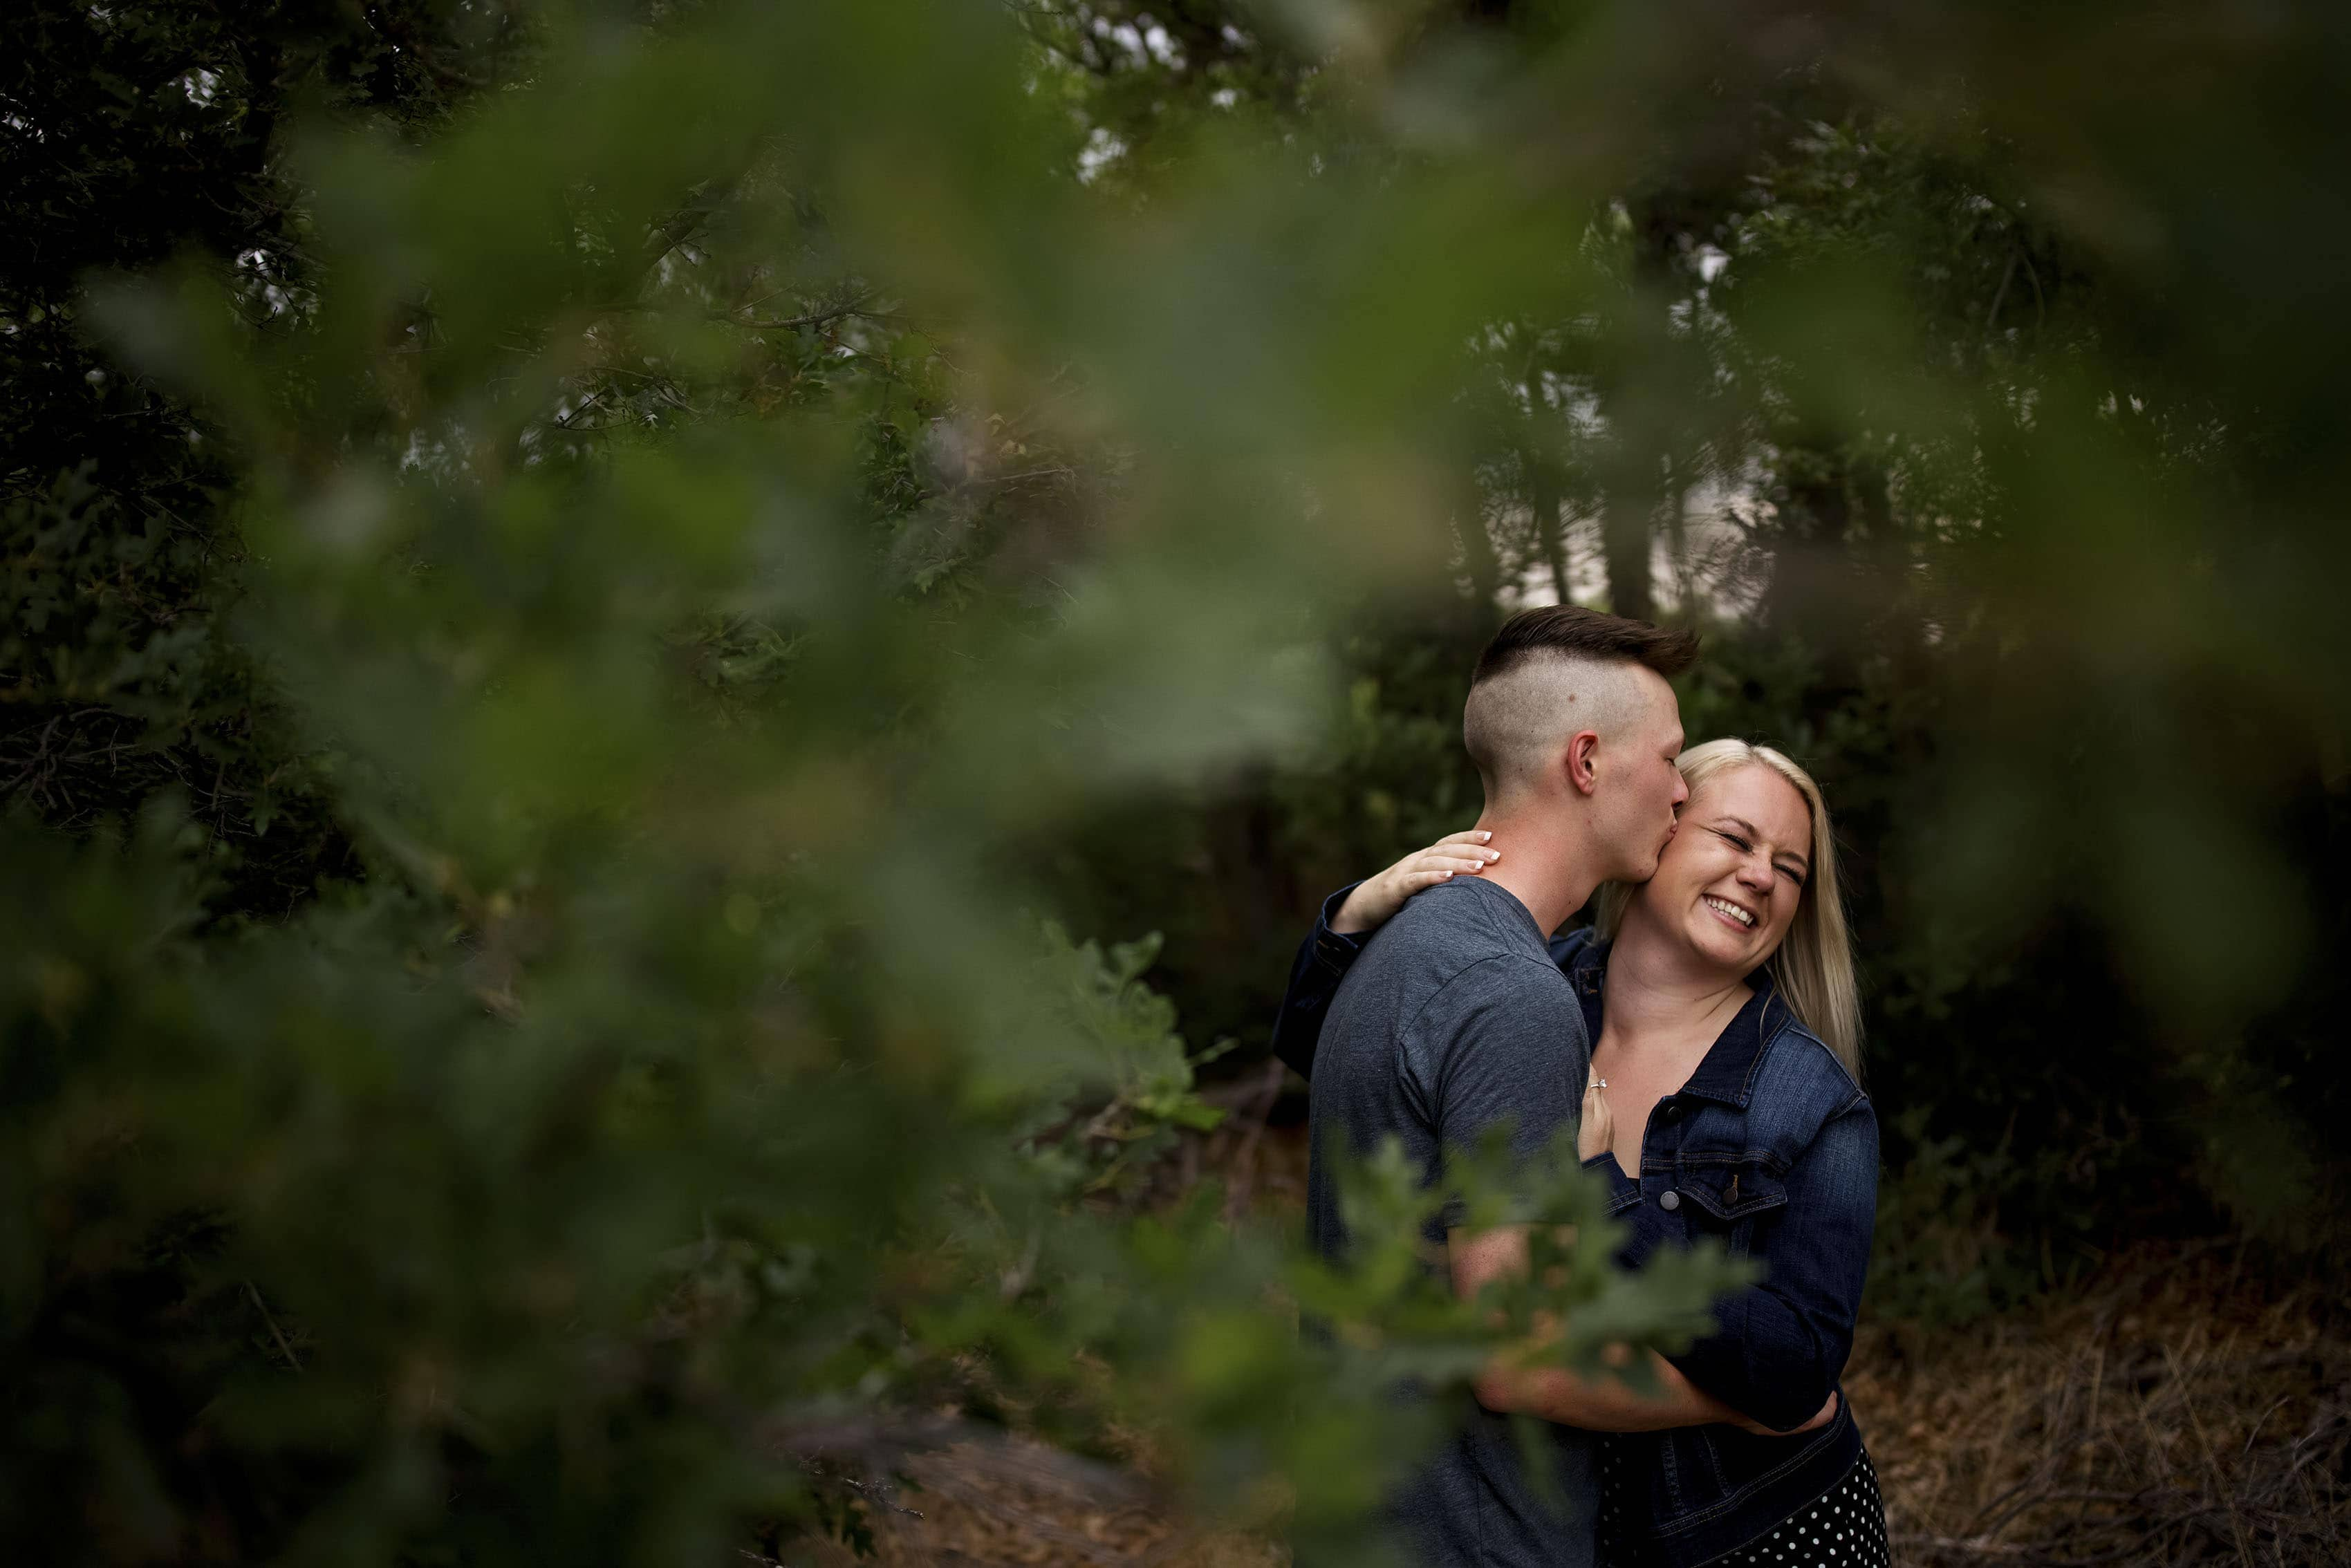 Colin kisses Kelsey in the woods during their engagement photos